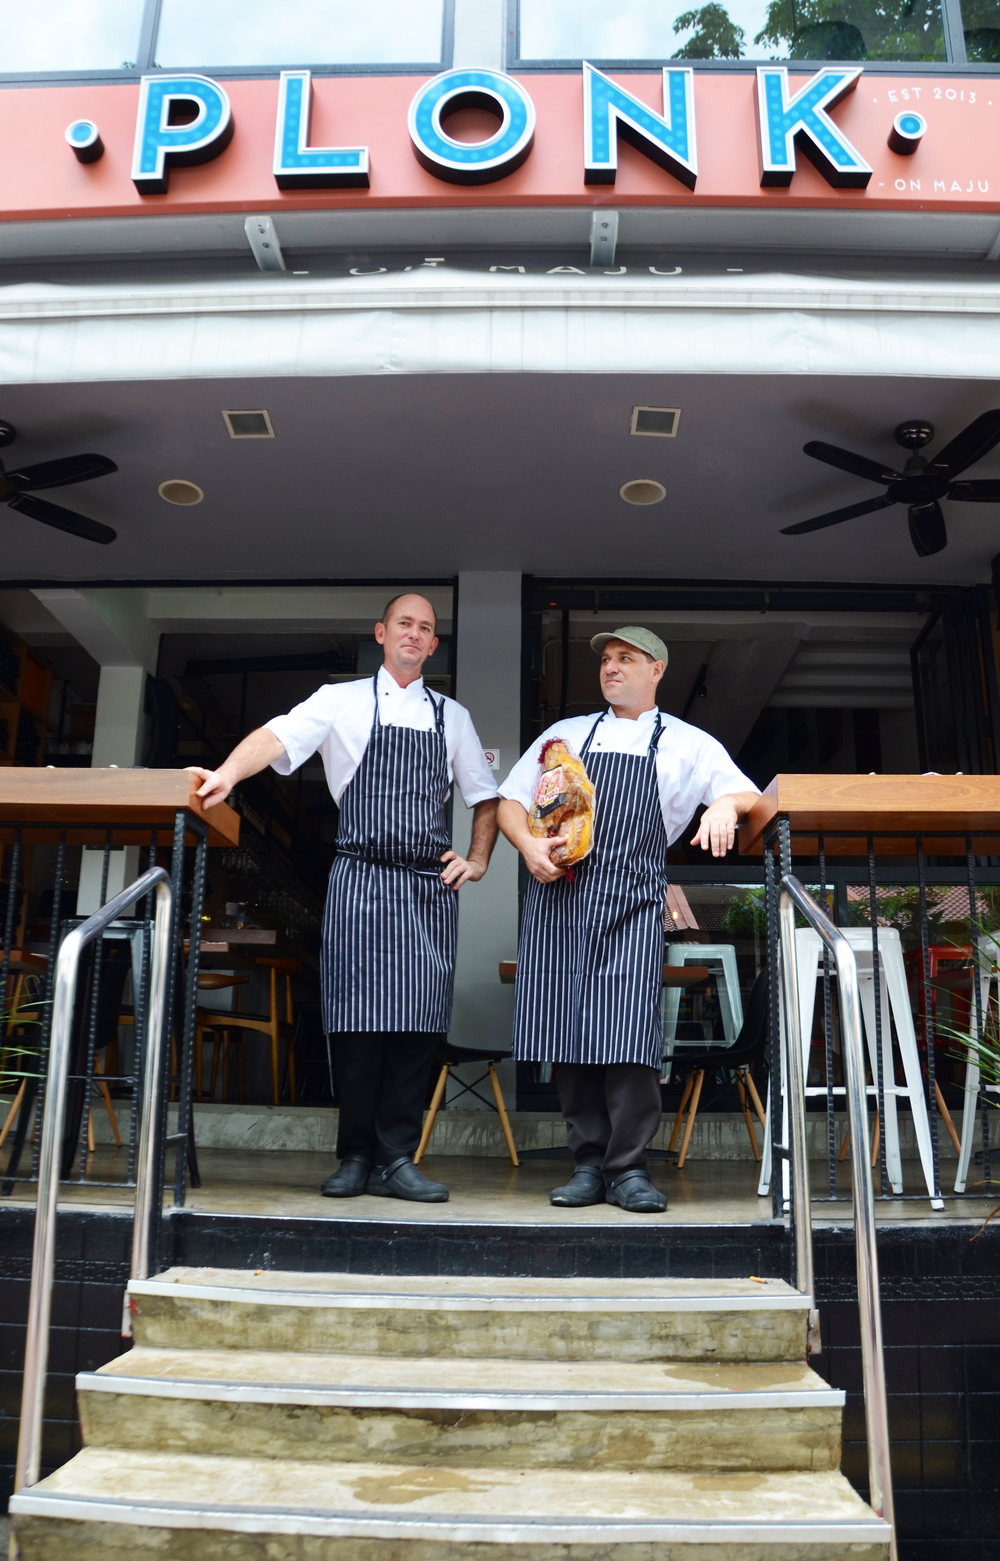 Every day Jules & Simon prepare specials from a selection of fresh produce from their suppliers